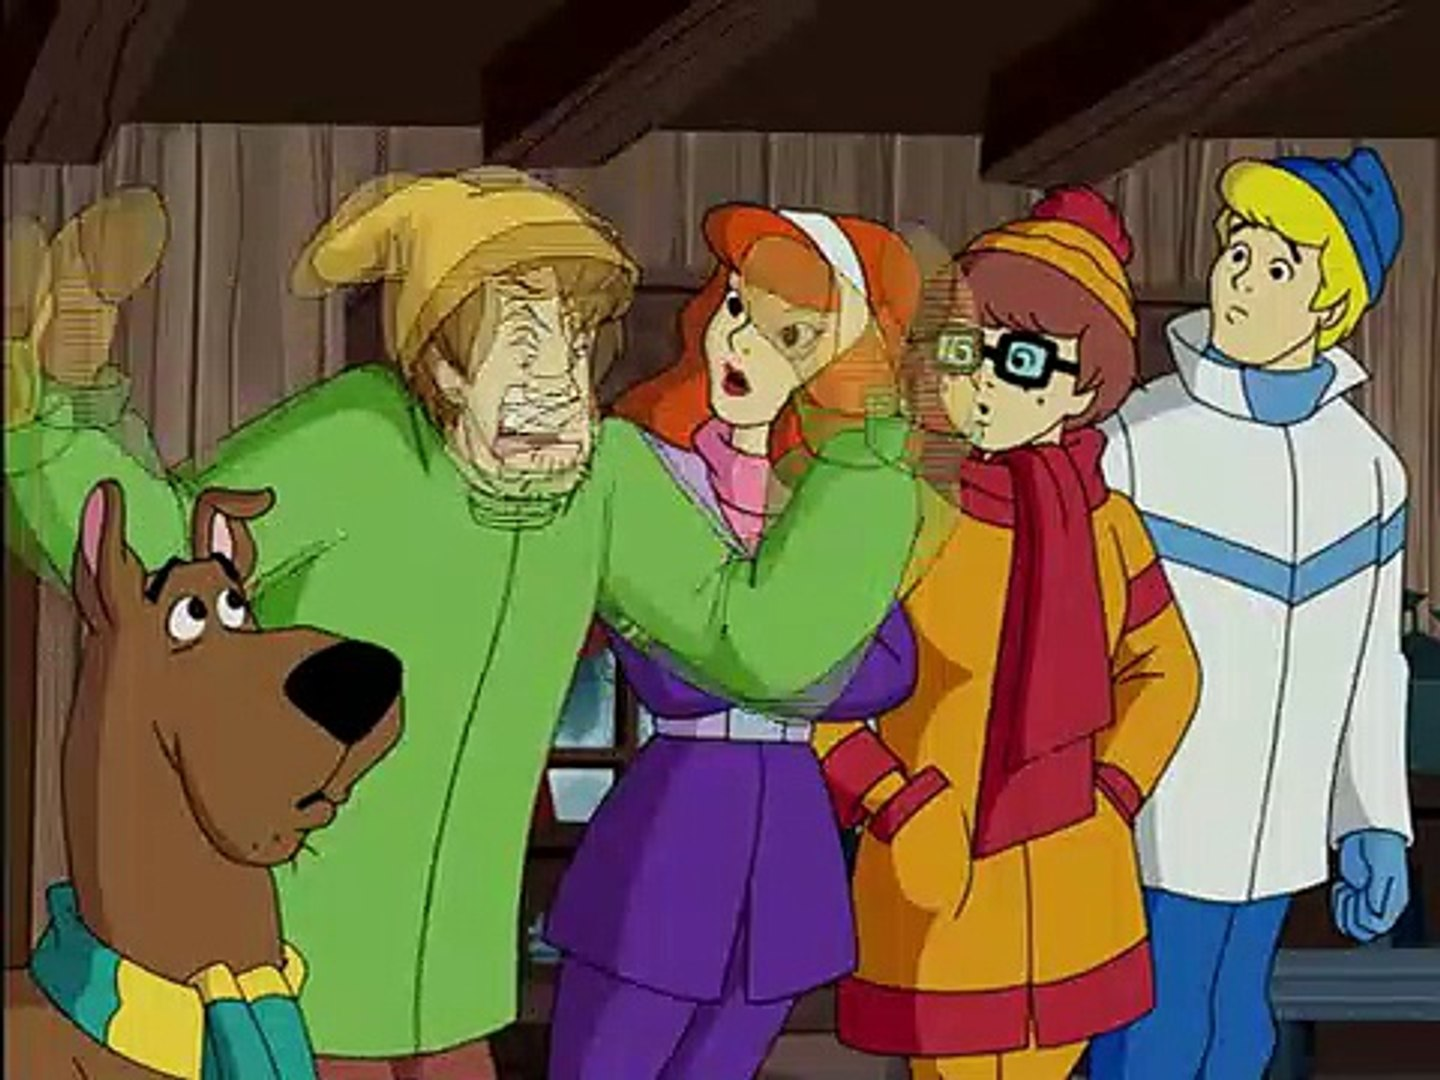 Scooby Doo Christmas.What S New Scooby Doo S03e14 Christmas